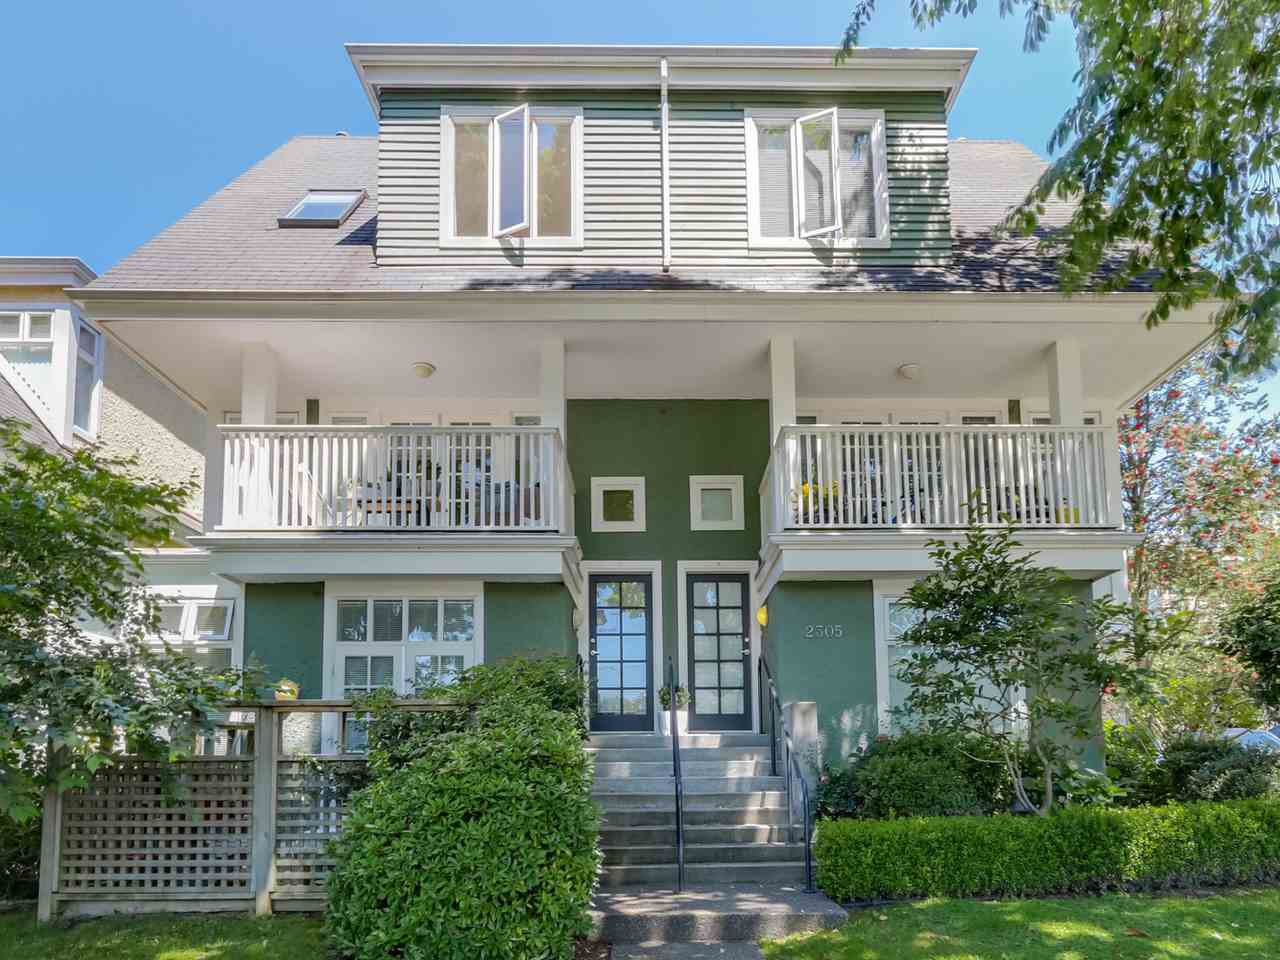 Main Photo: 3 2305 W 10TH AVENUE in Vancouver: Kitsilano Townhouse for sale (Vancouver West)  : MLS®# R2087284